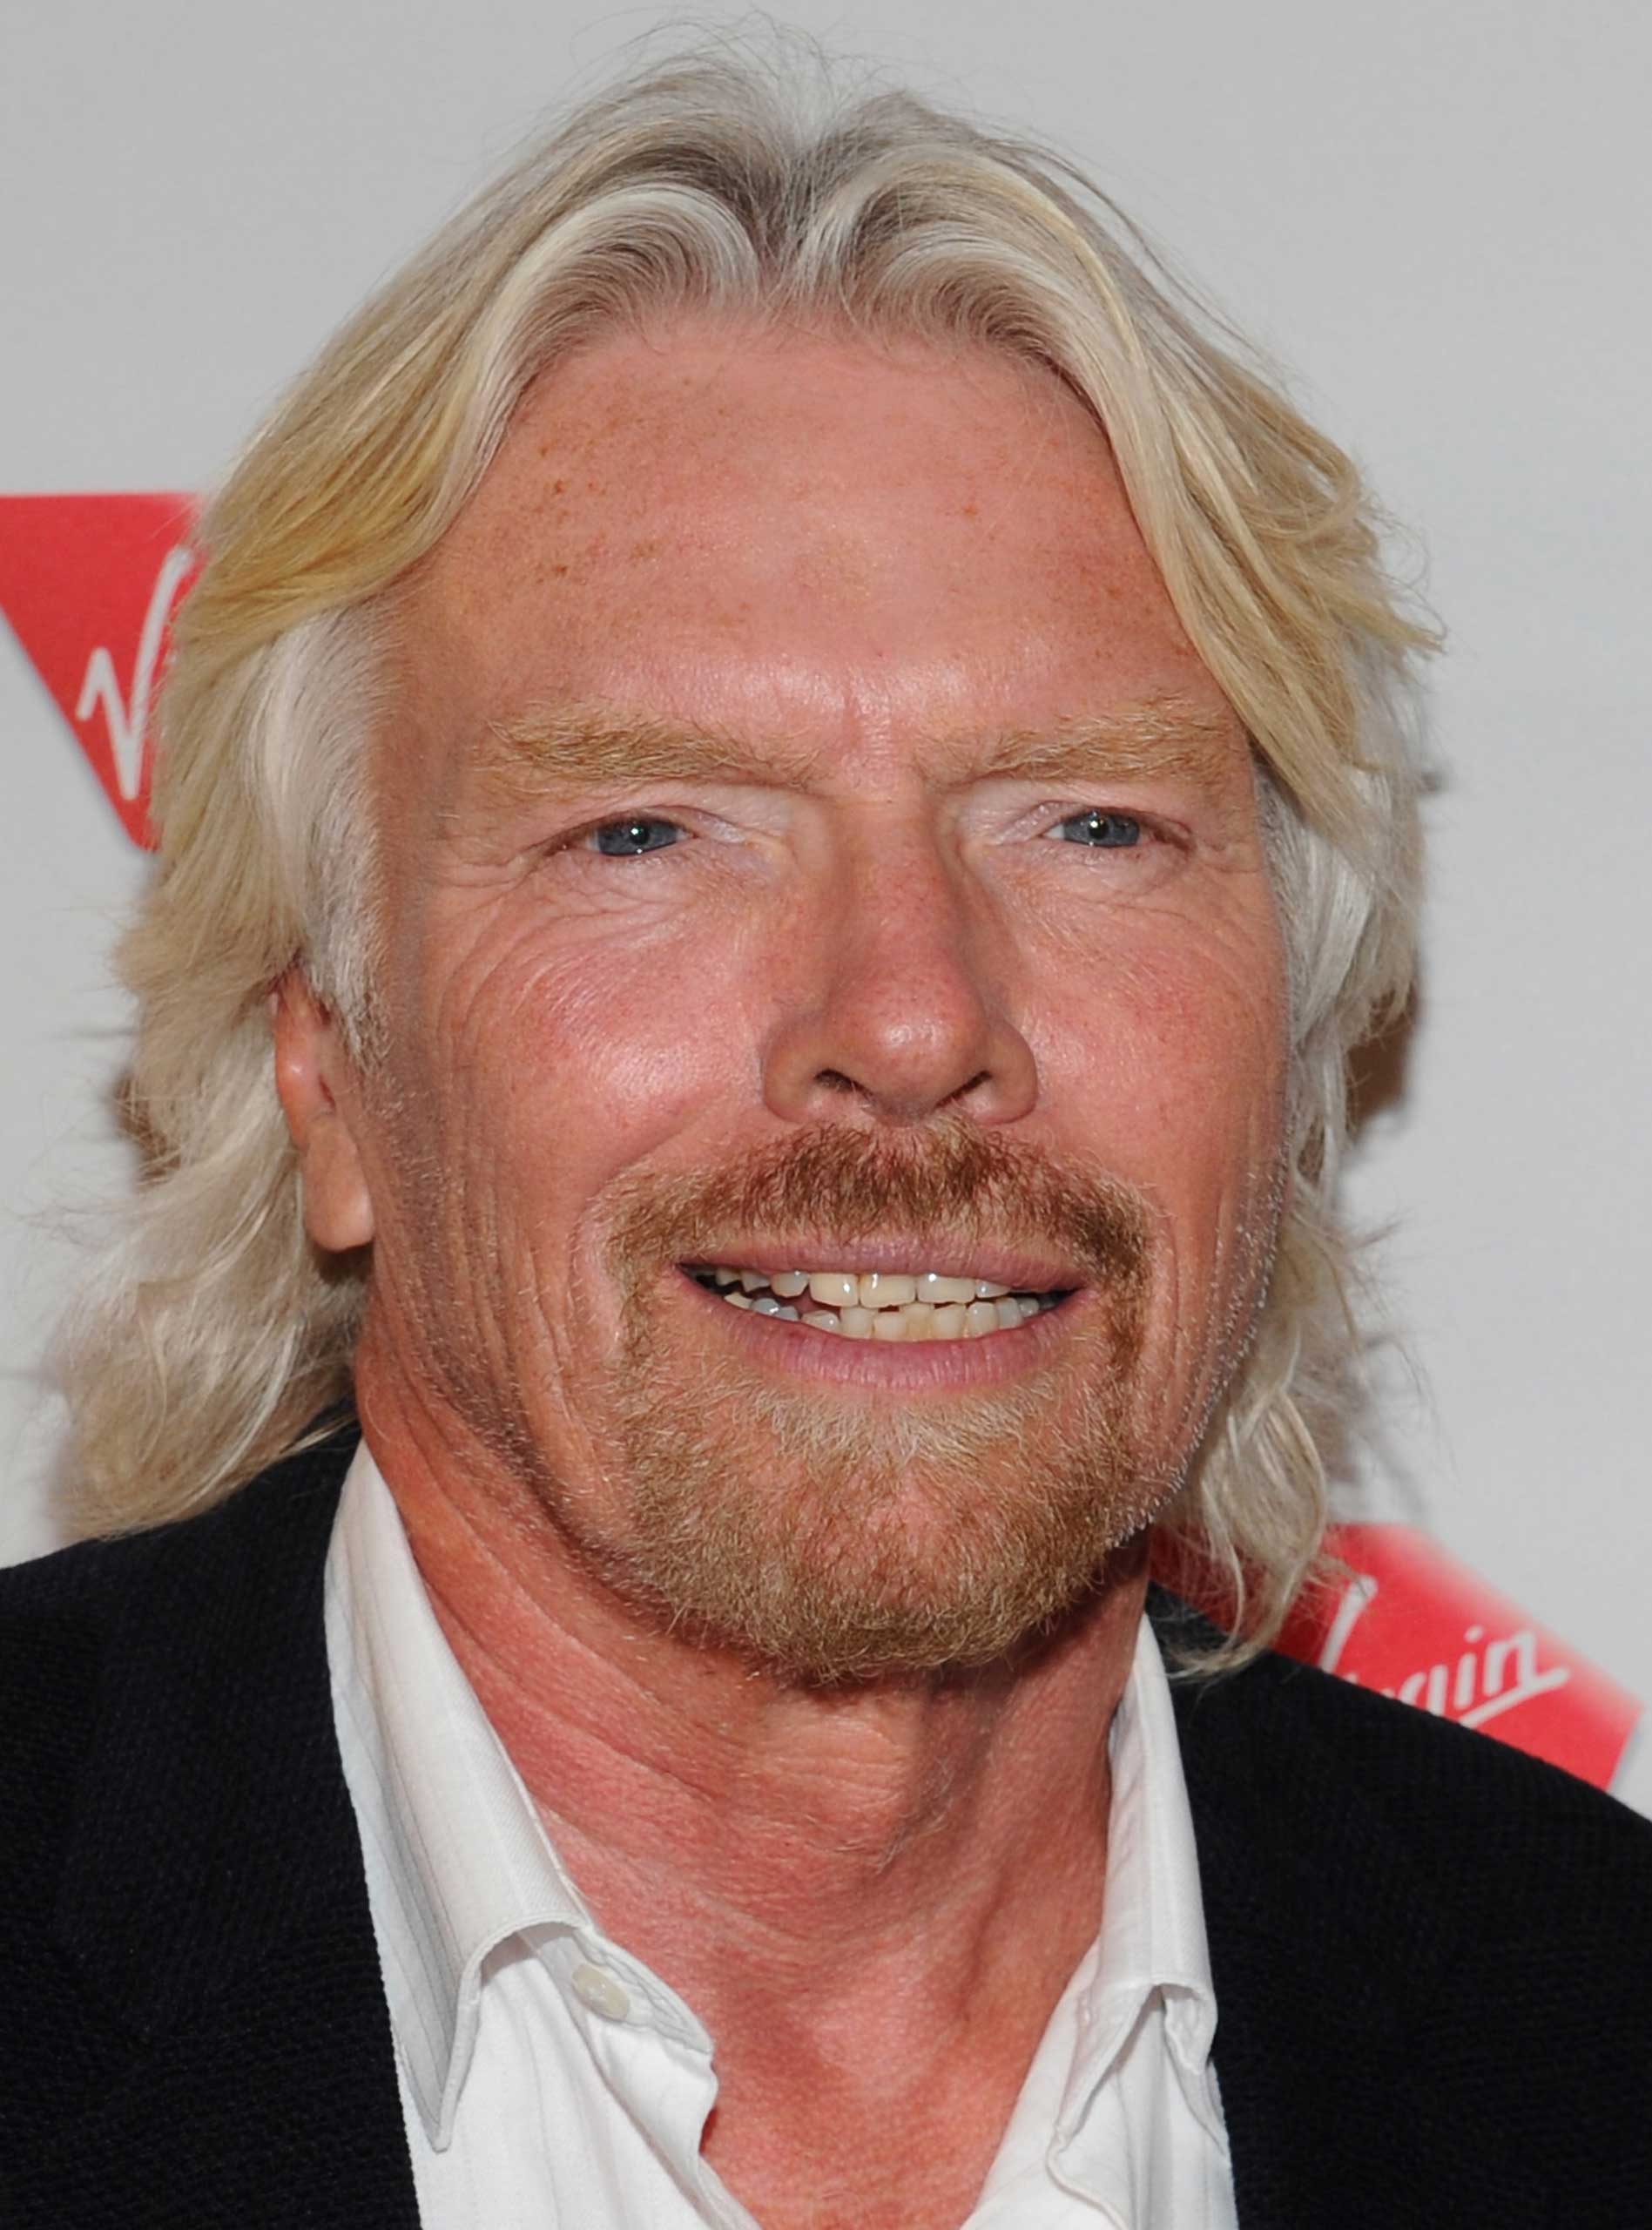 Virgin founder Richard Branson